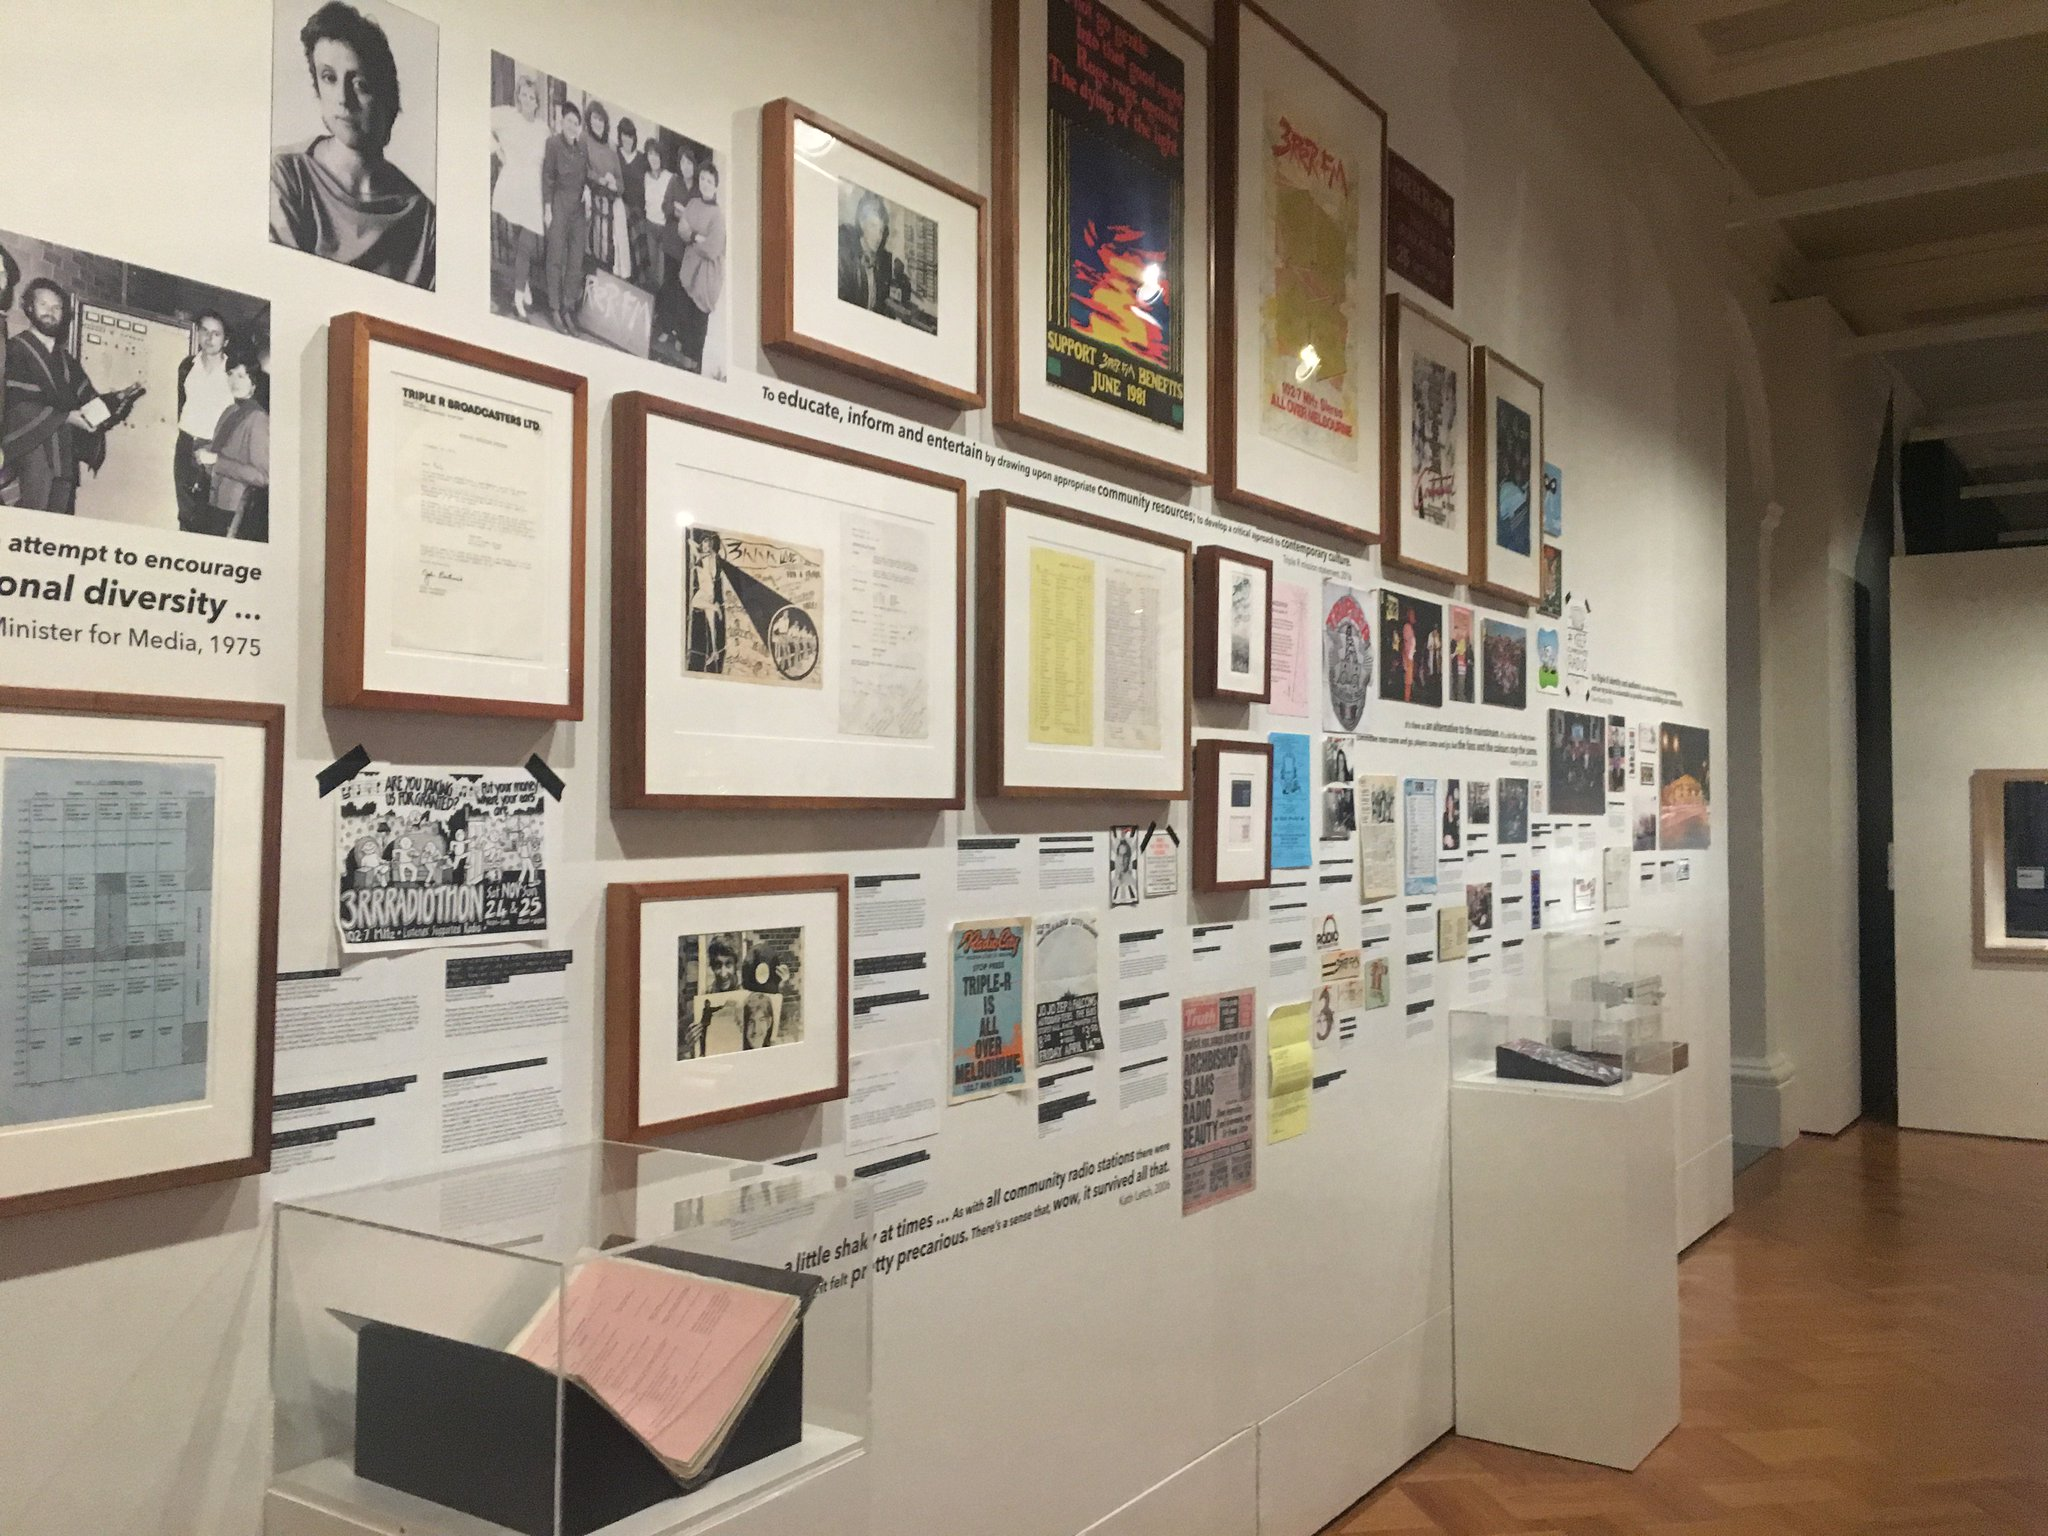 Want to take in @3RRRFM's history with a single pan of your head? This wall has you covered. #WorldRadioDay https://t.co/MQE1NNF0TK